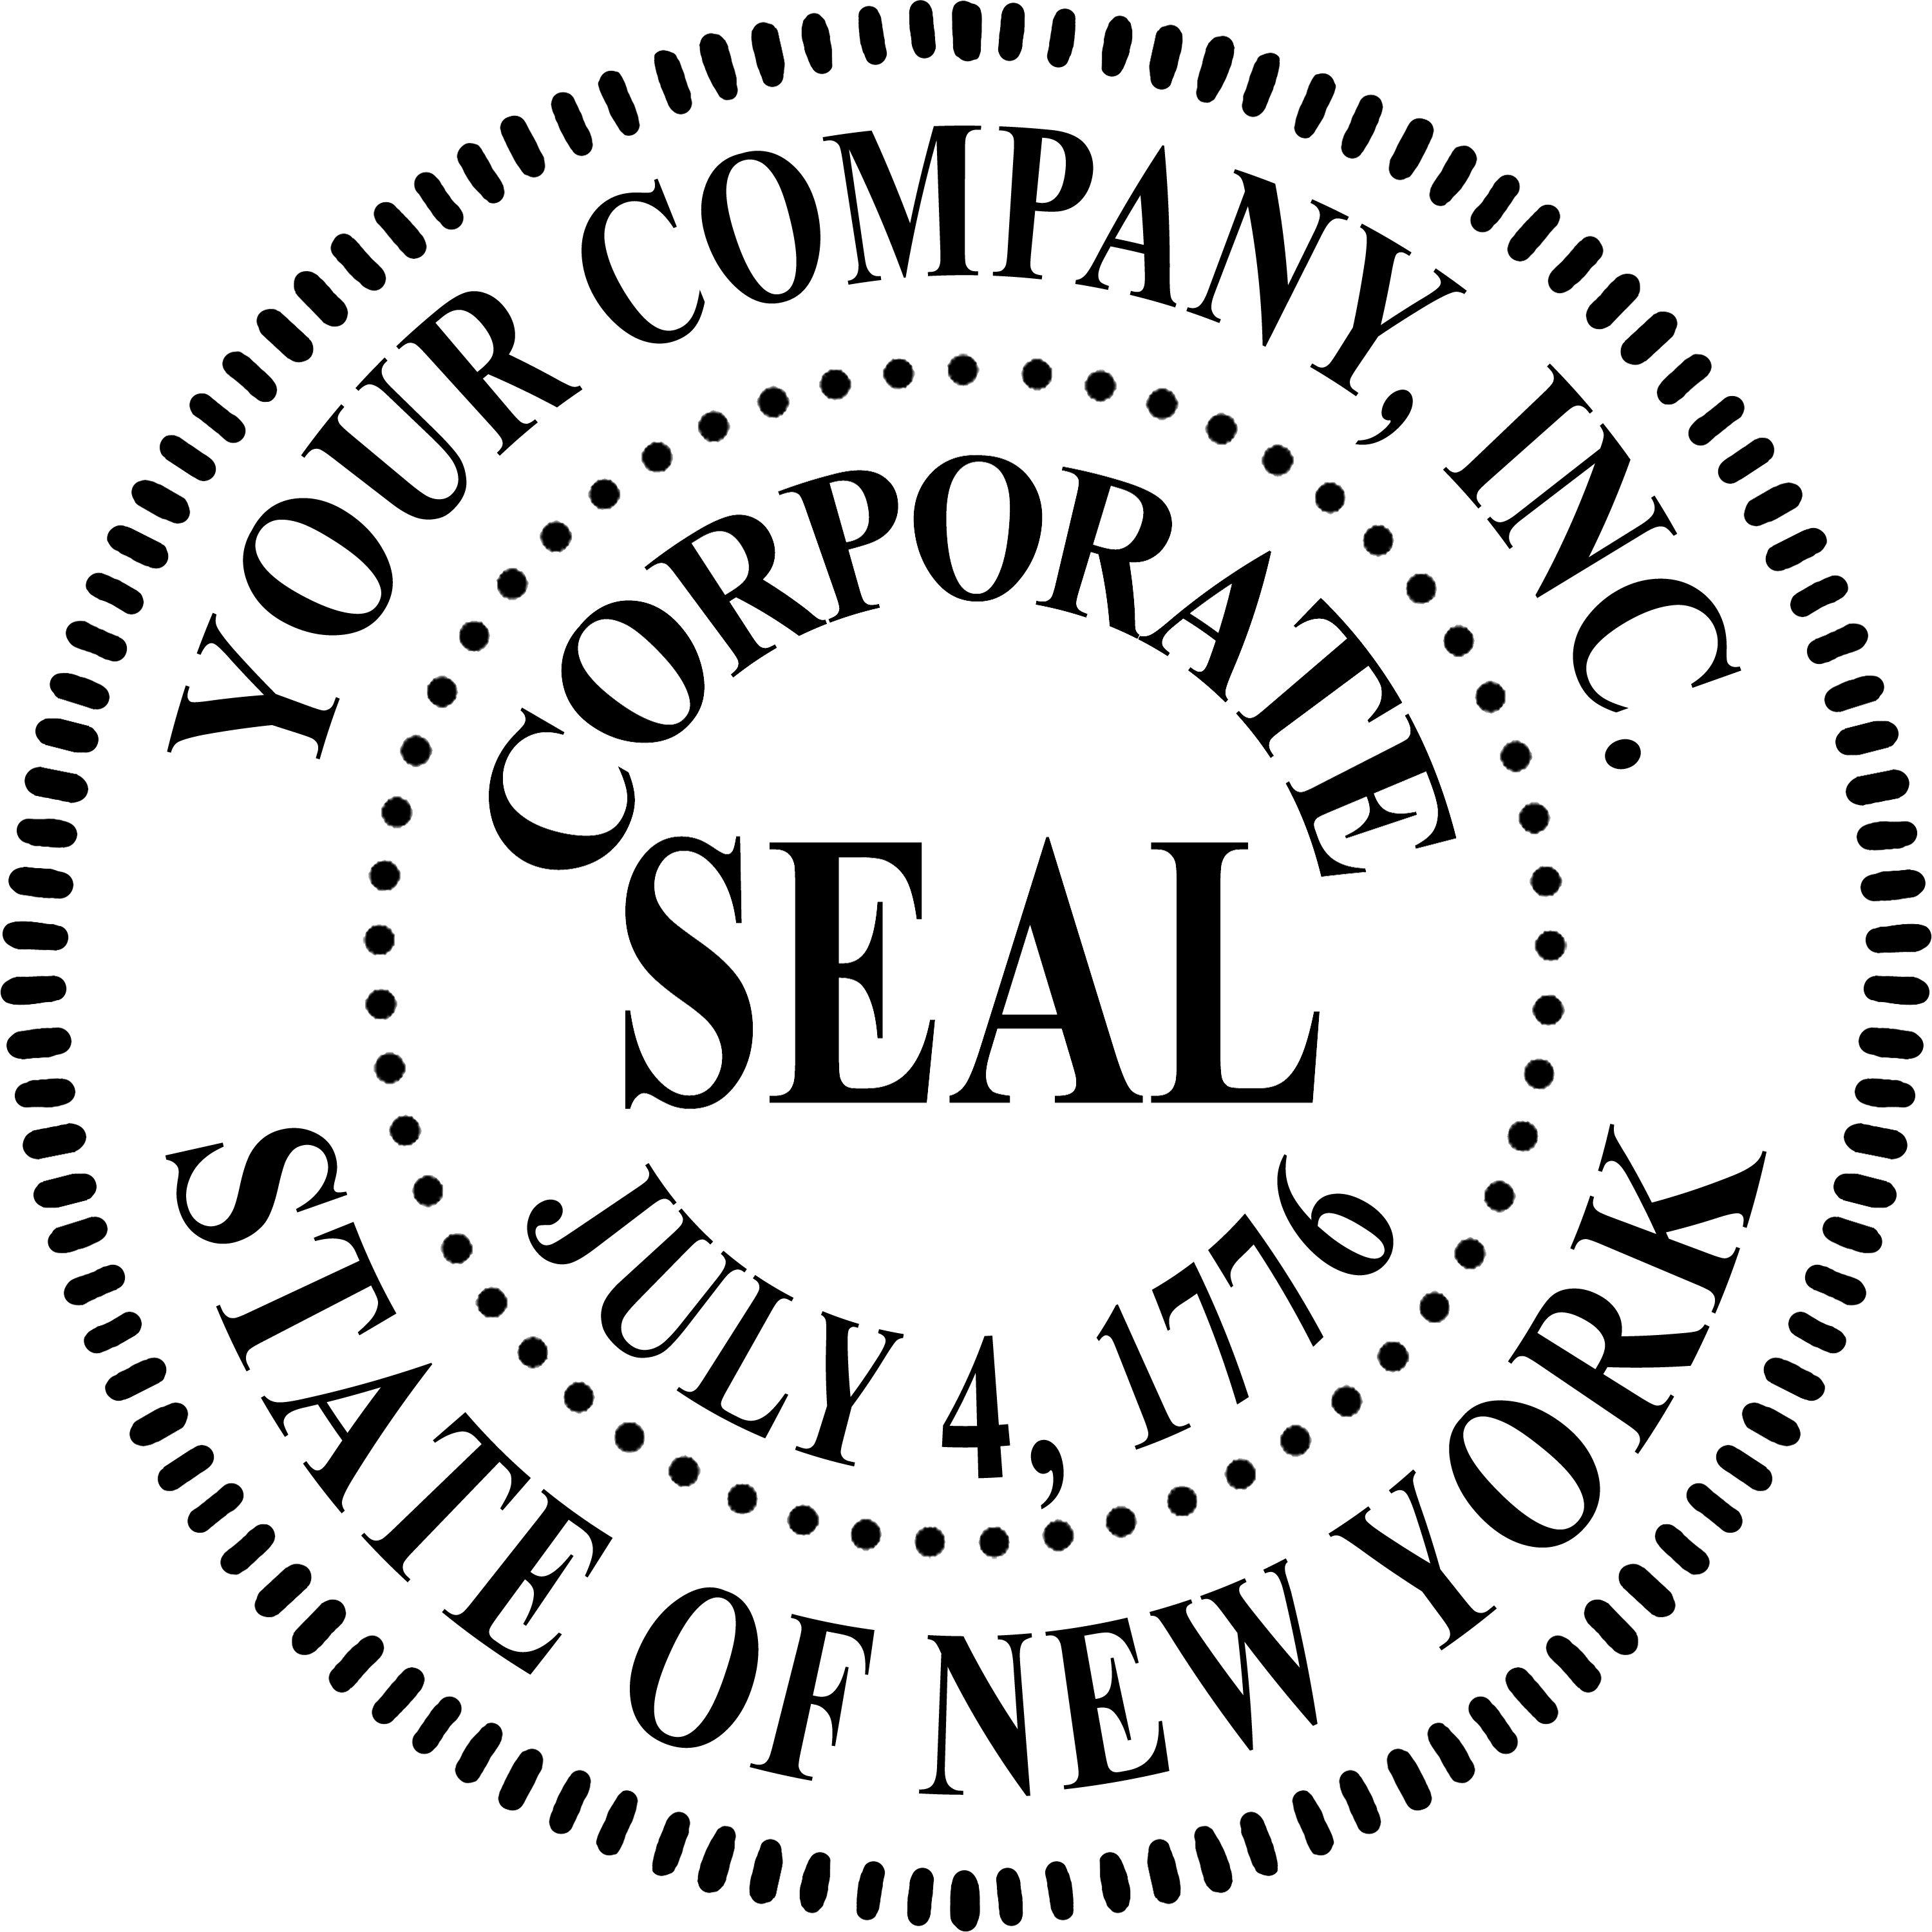 Corporate Seal Template Free